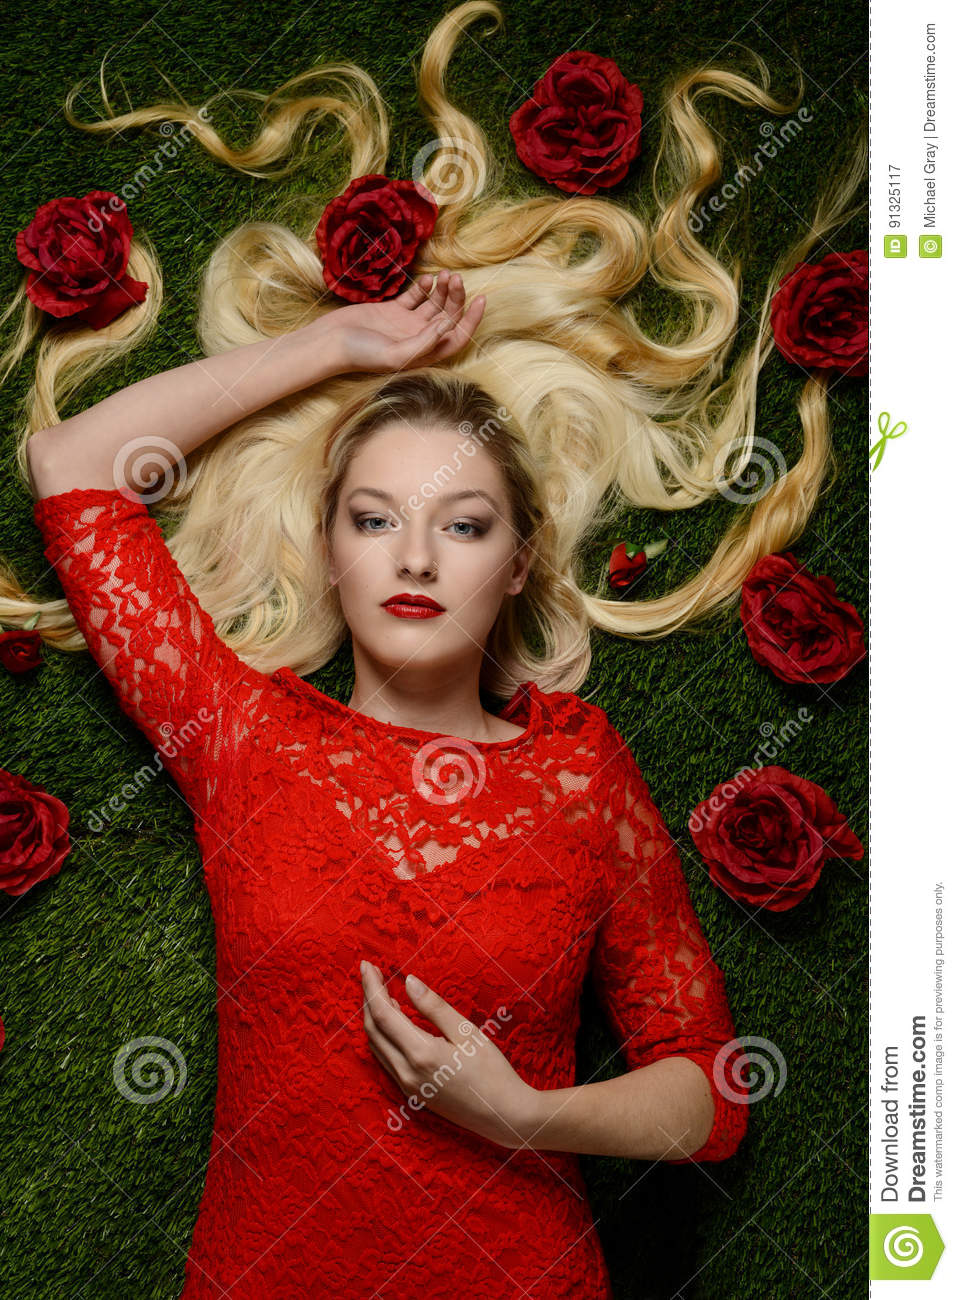 Portrait of woman in red dress laying in grass with roses